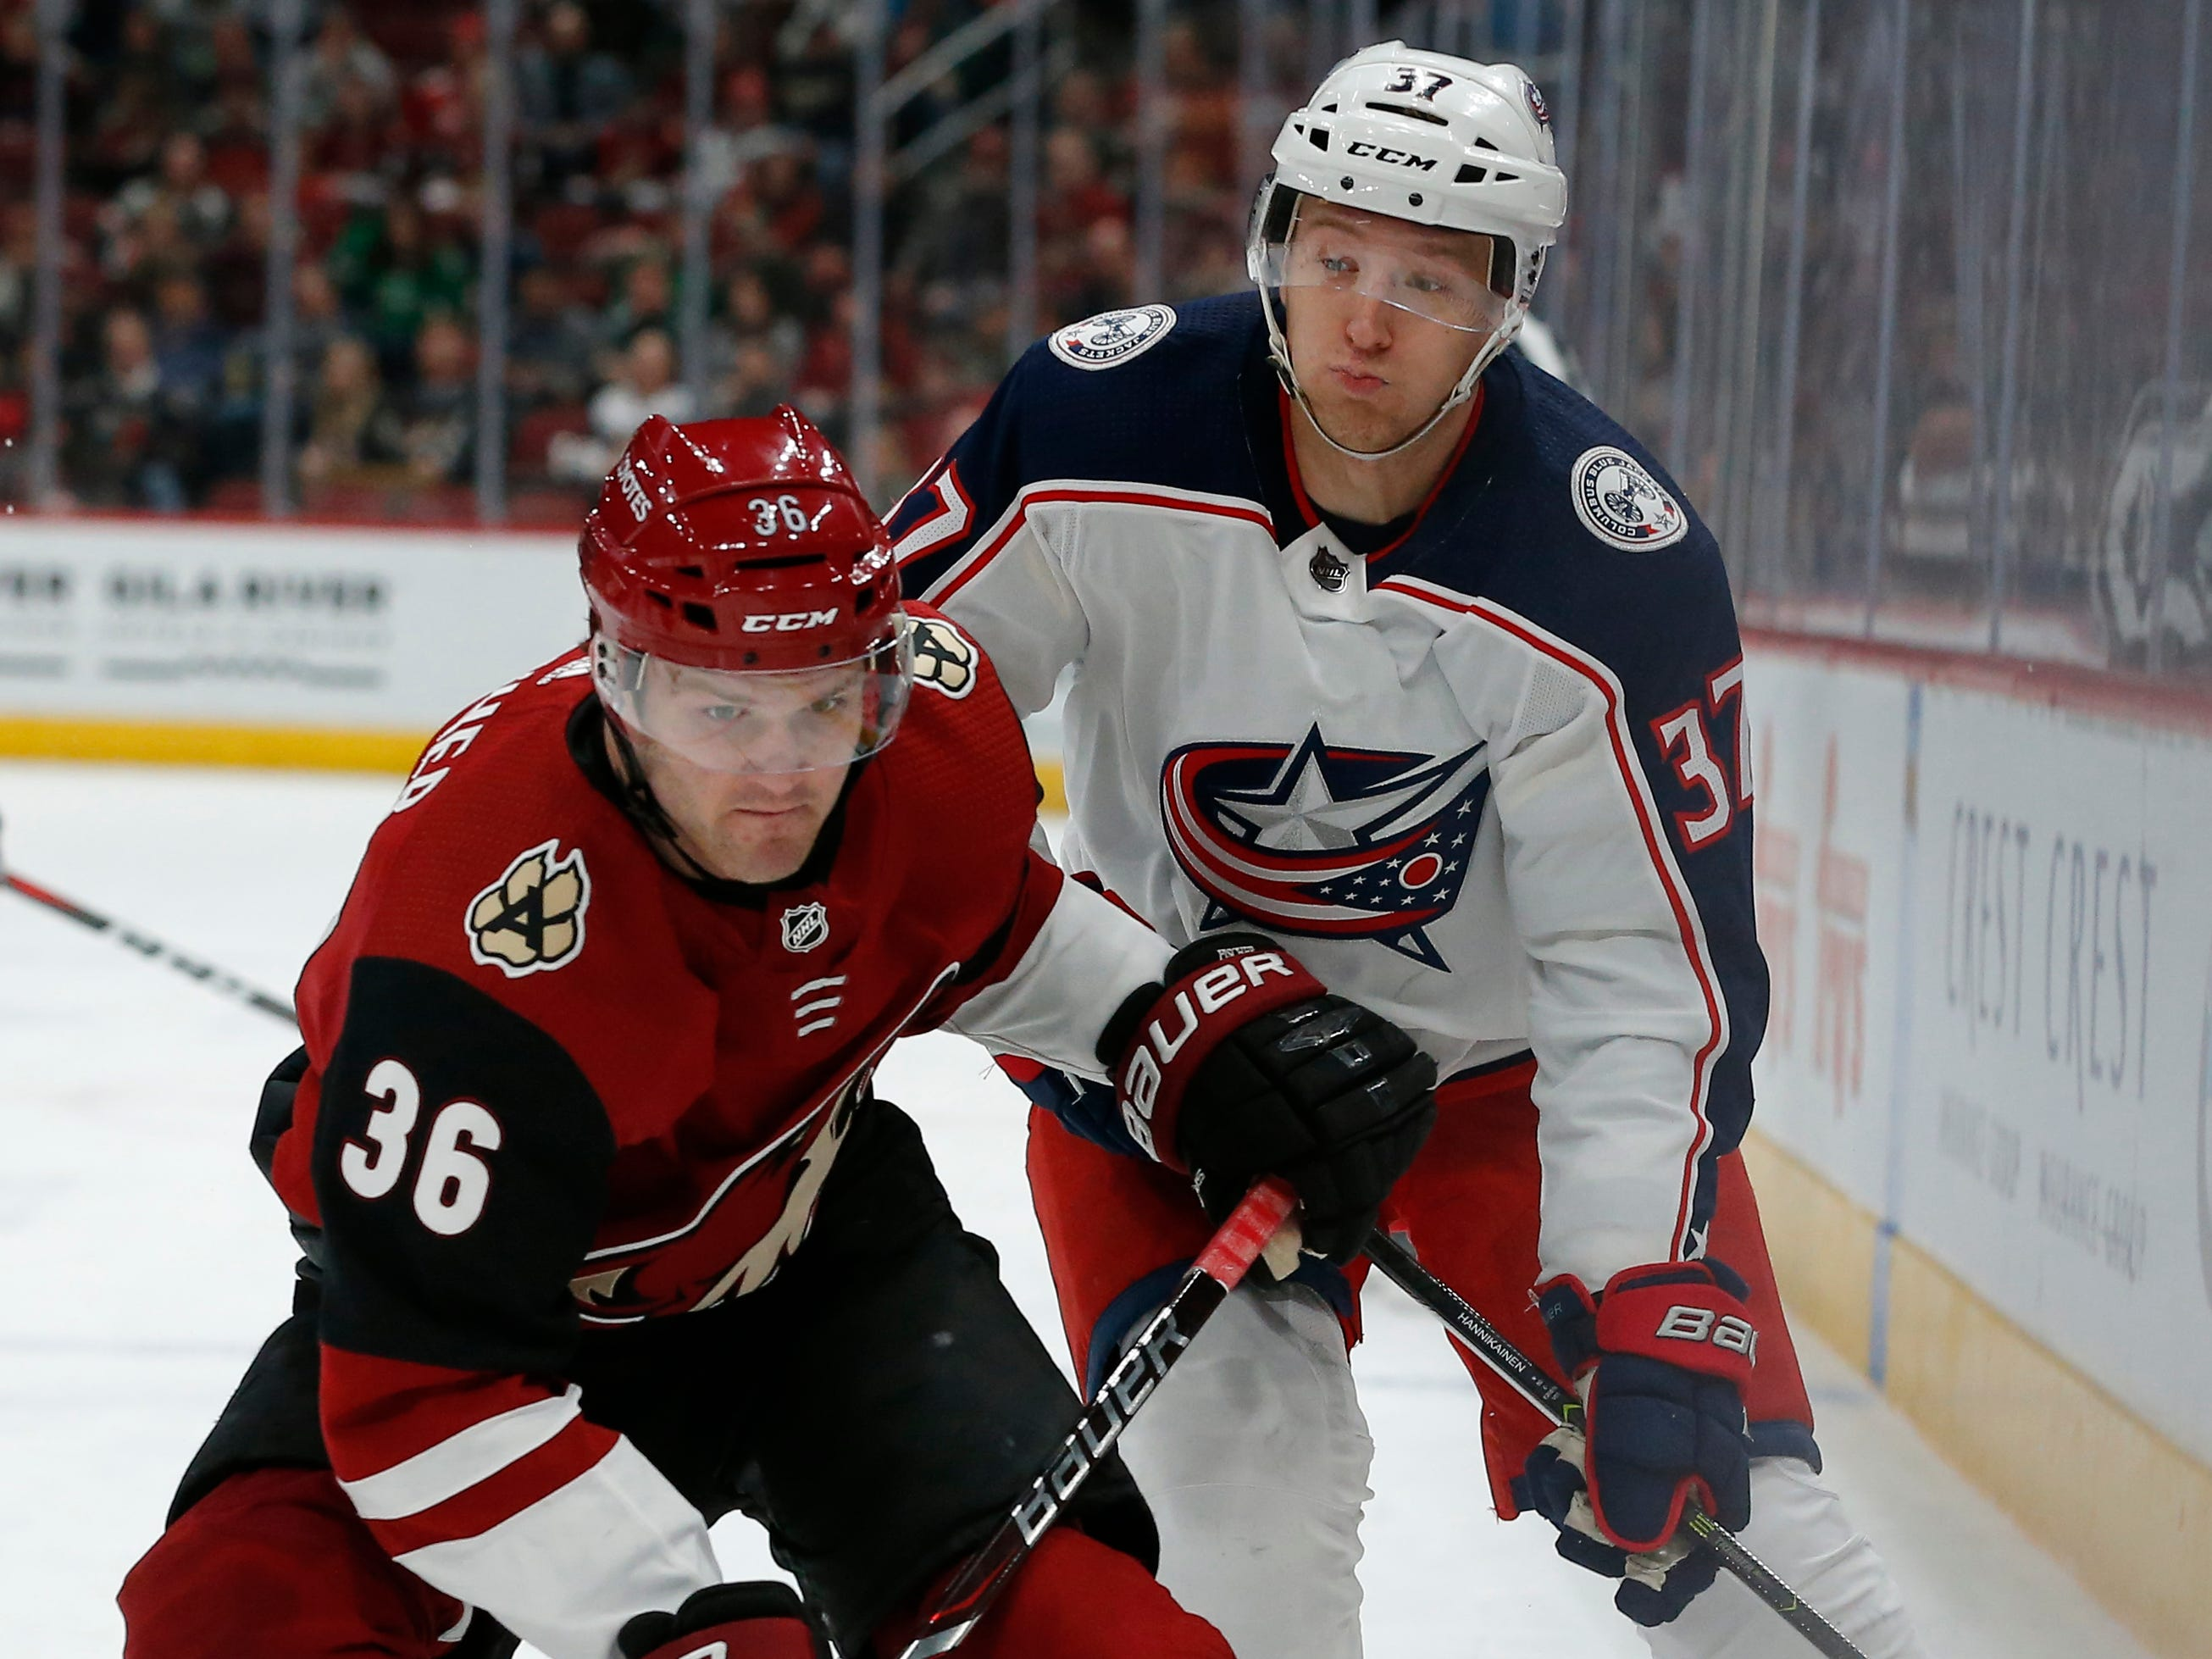 Arizona Coyotes right wing Christian Fischer (36) shields Columbus Blue Jackets left wing Markus Hannikainen from the puck in the first period during an NHL hockey game, Thursday, Feb. 7, 2019, in Glendale, Ariz.